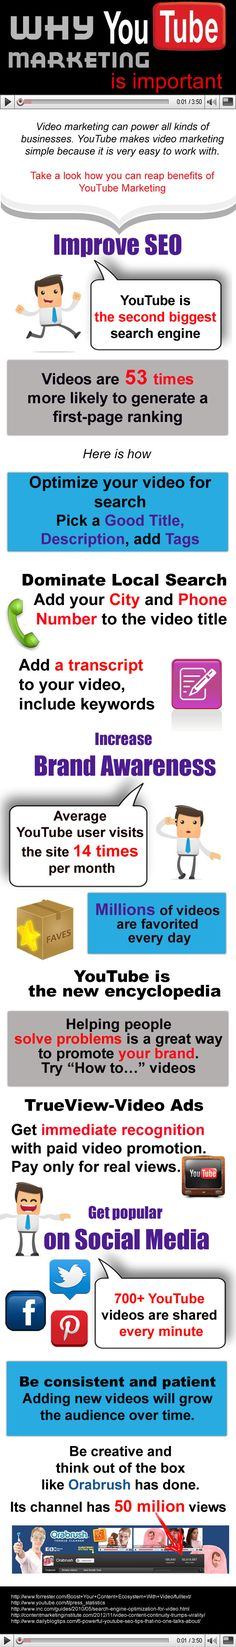 Reasons as to why YouTube marketing Is Important ...